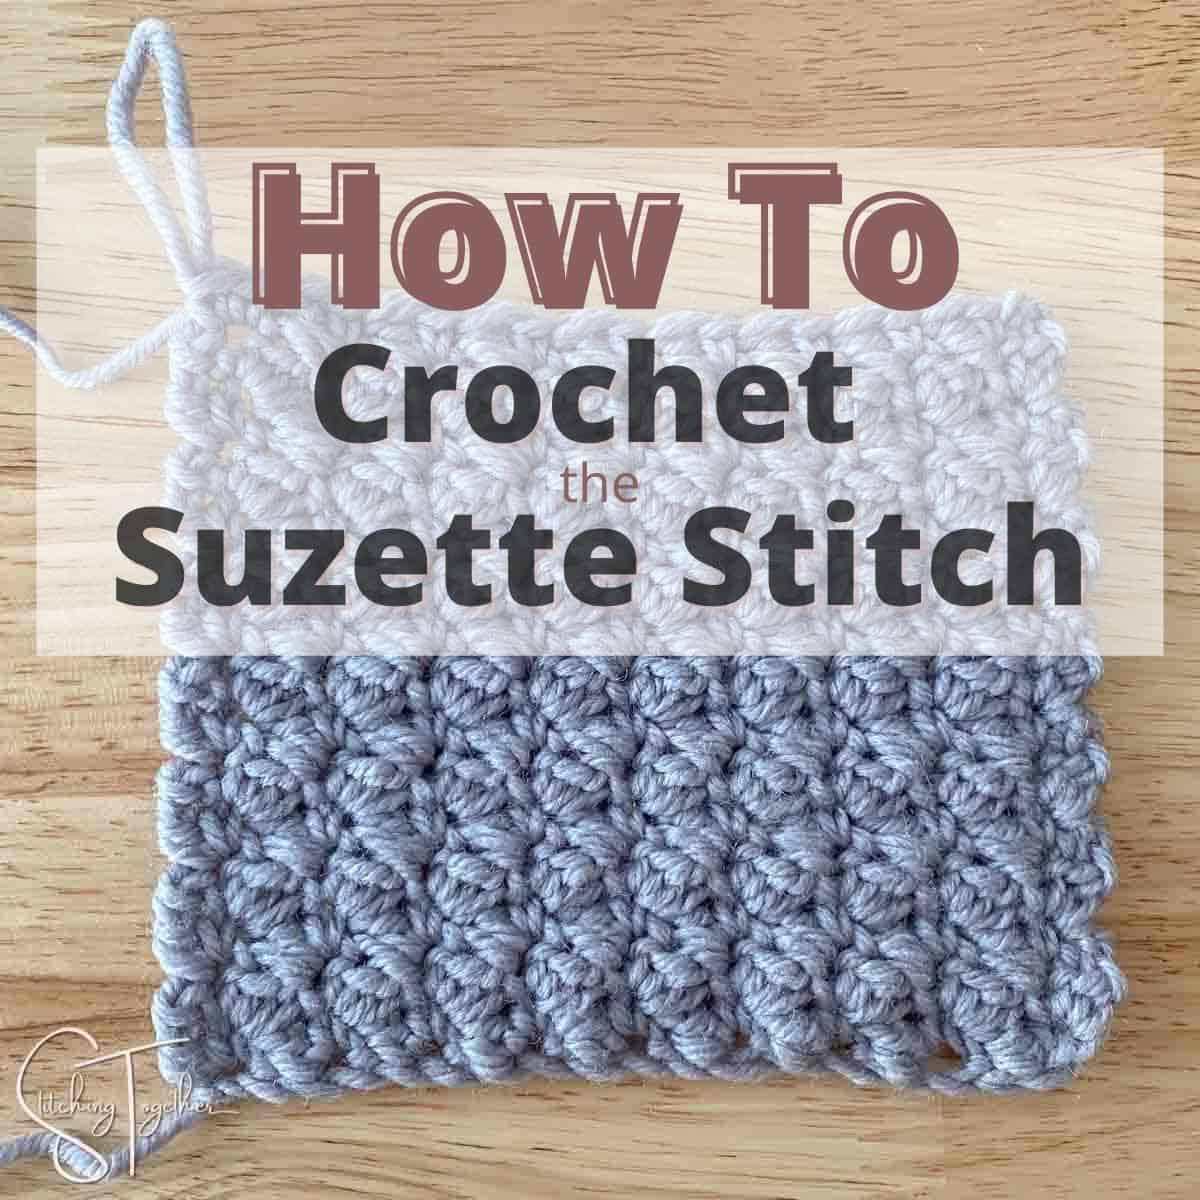 """crochet swatch with text overlay """"how to crochet the suzette stitch"""""""